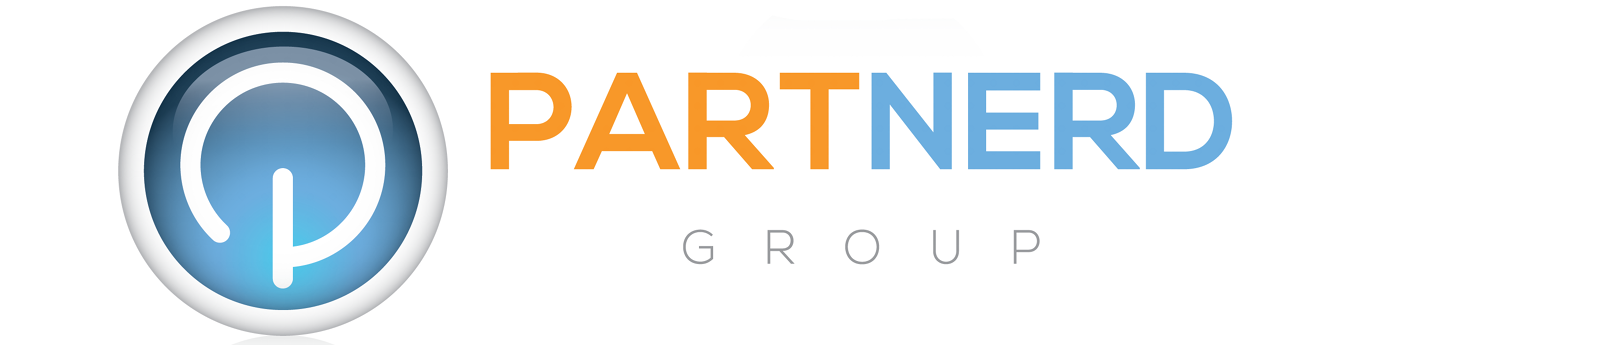 Partnerd Group